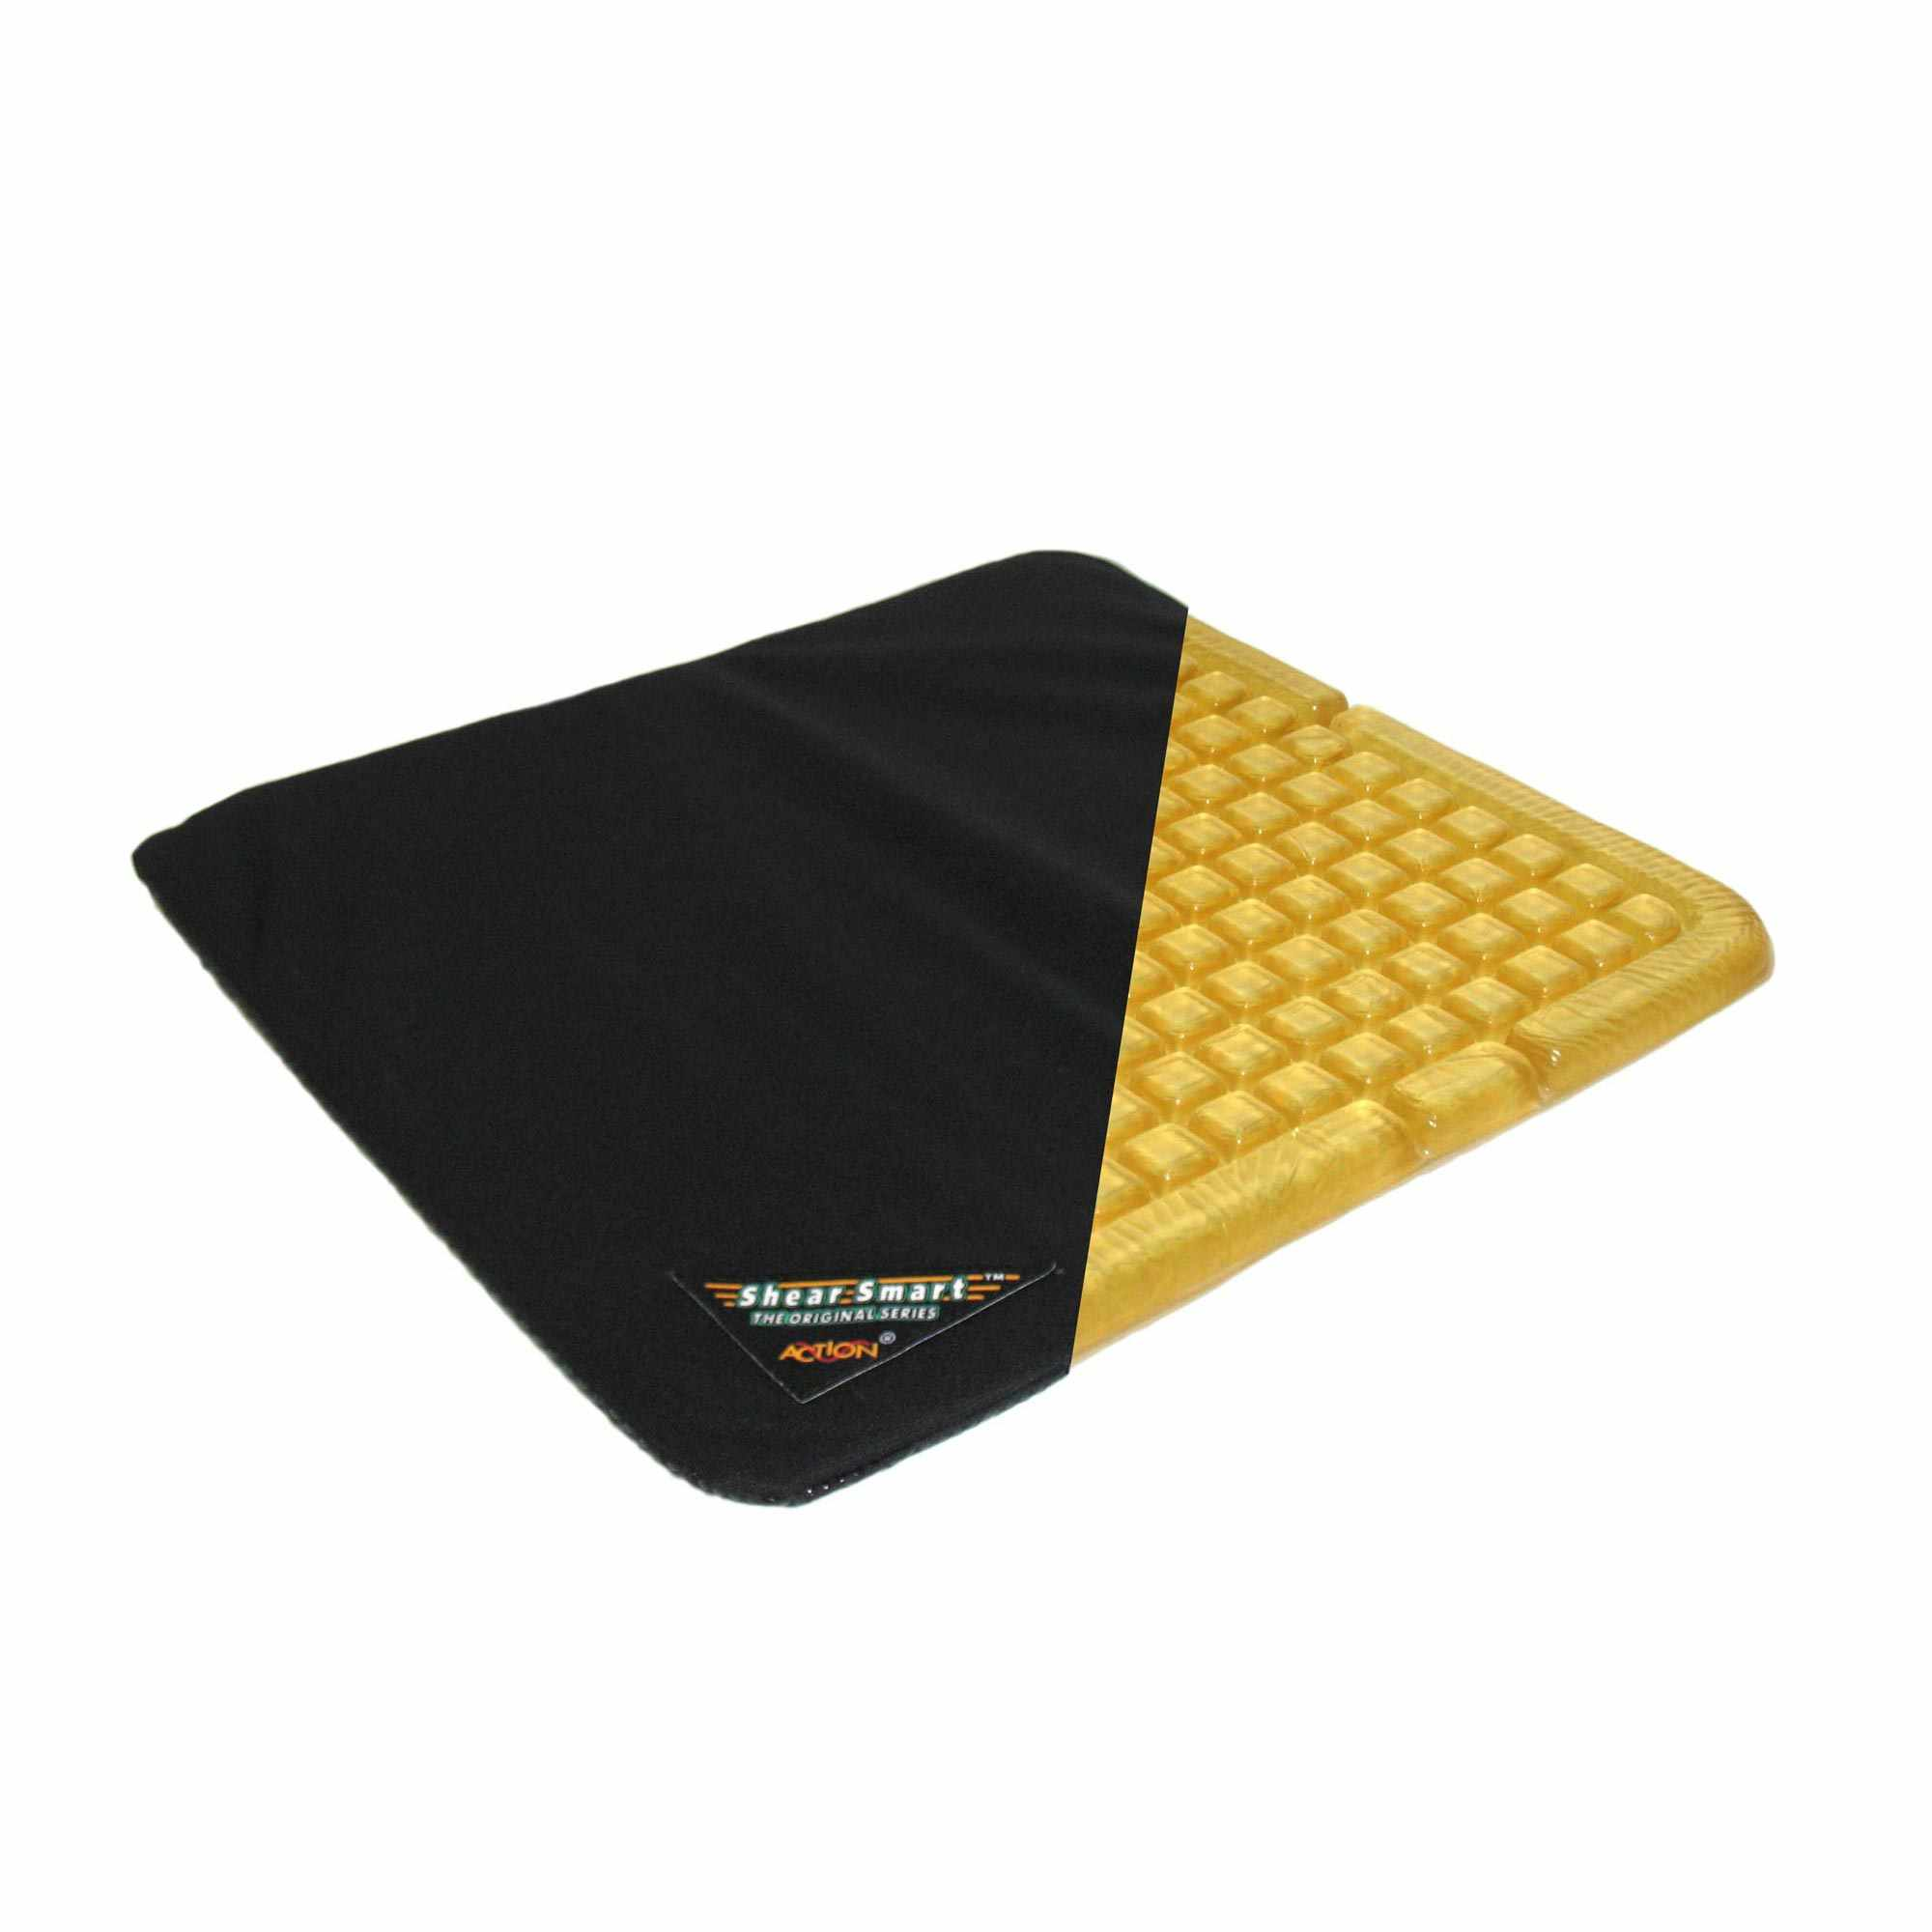 Action Products Shear smart pad with cover